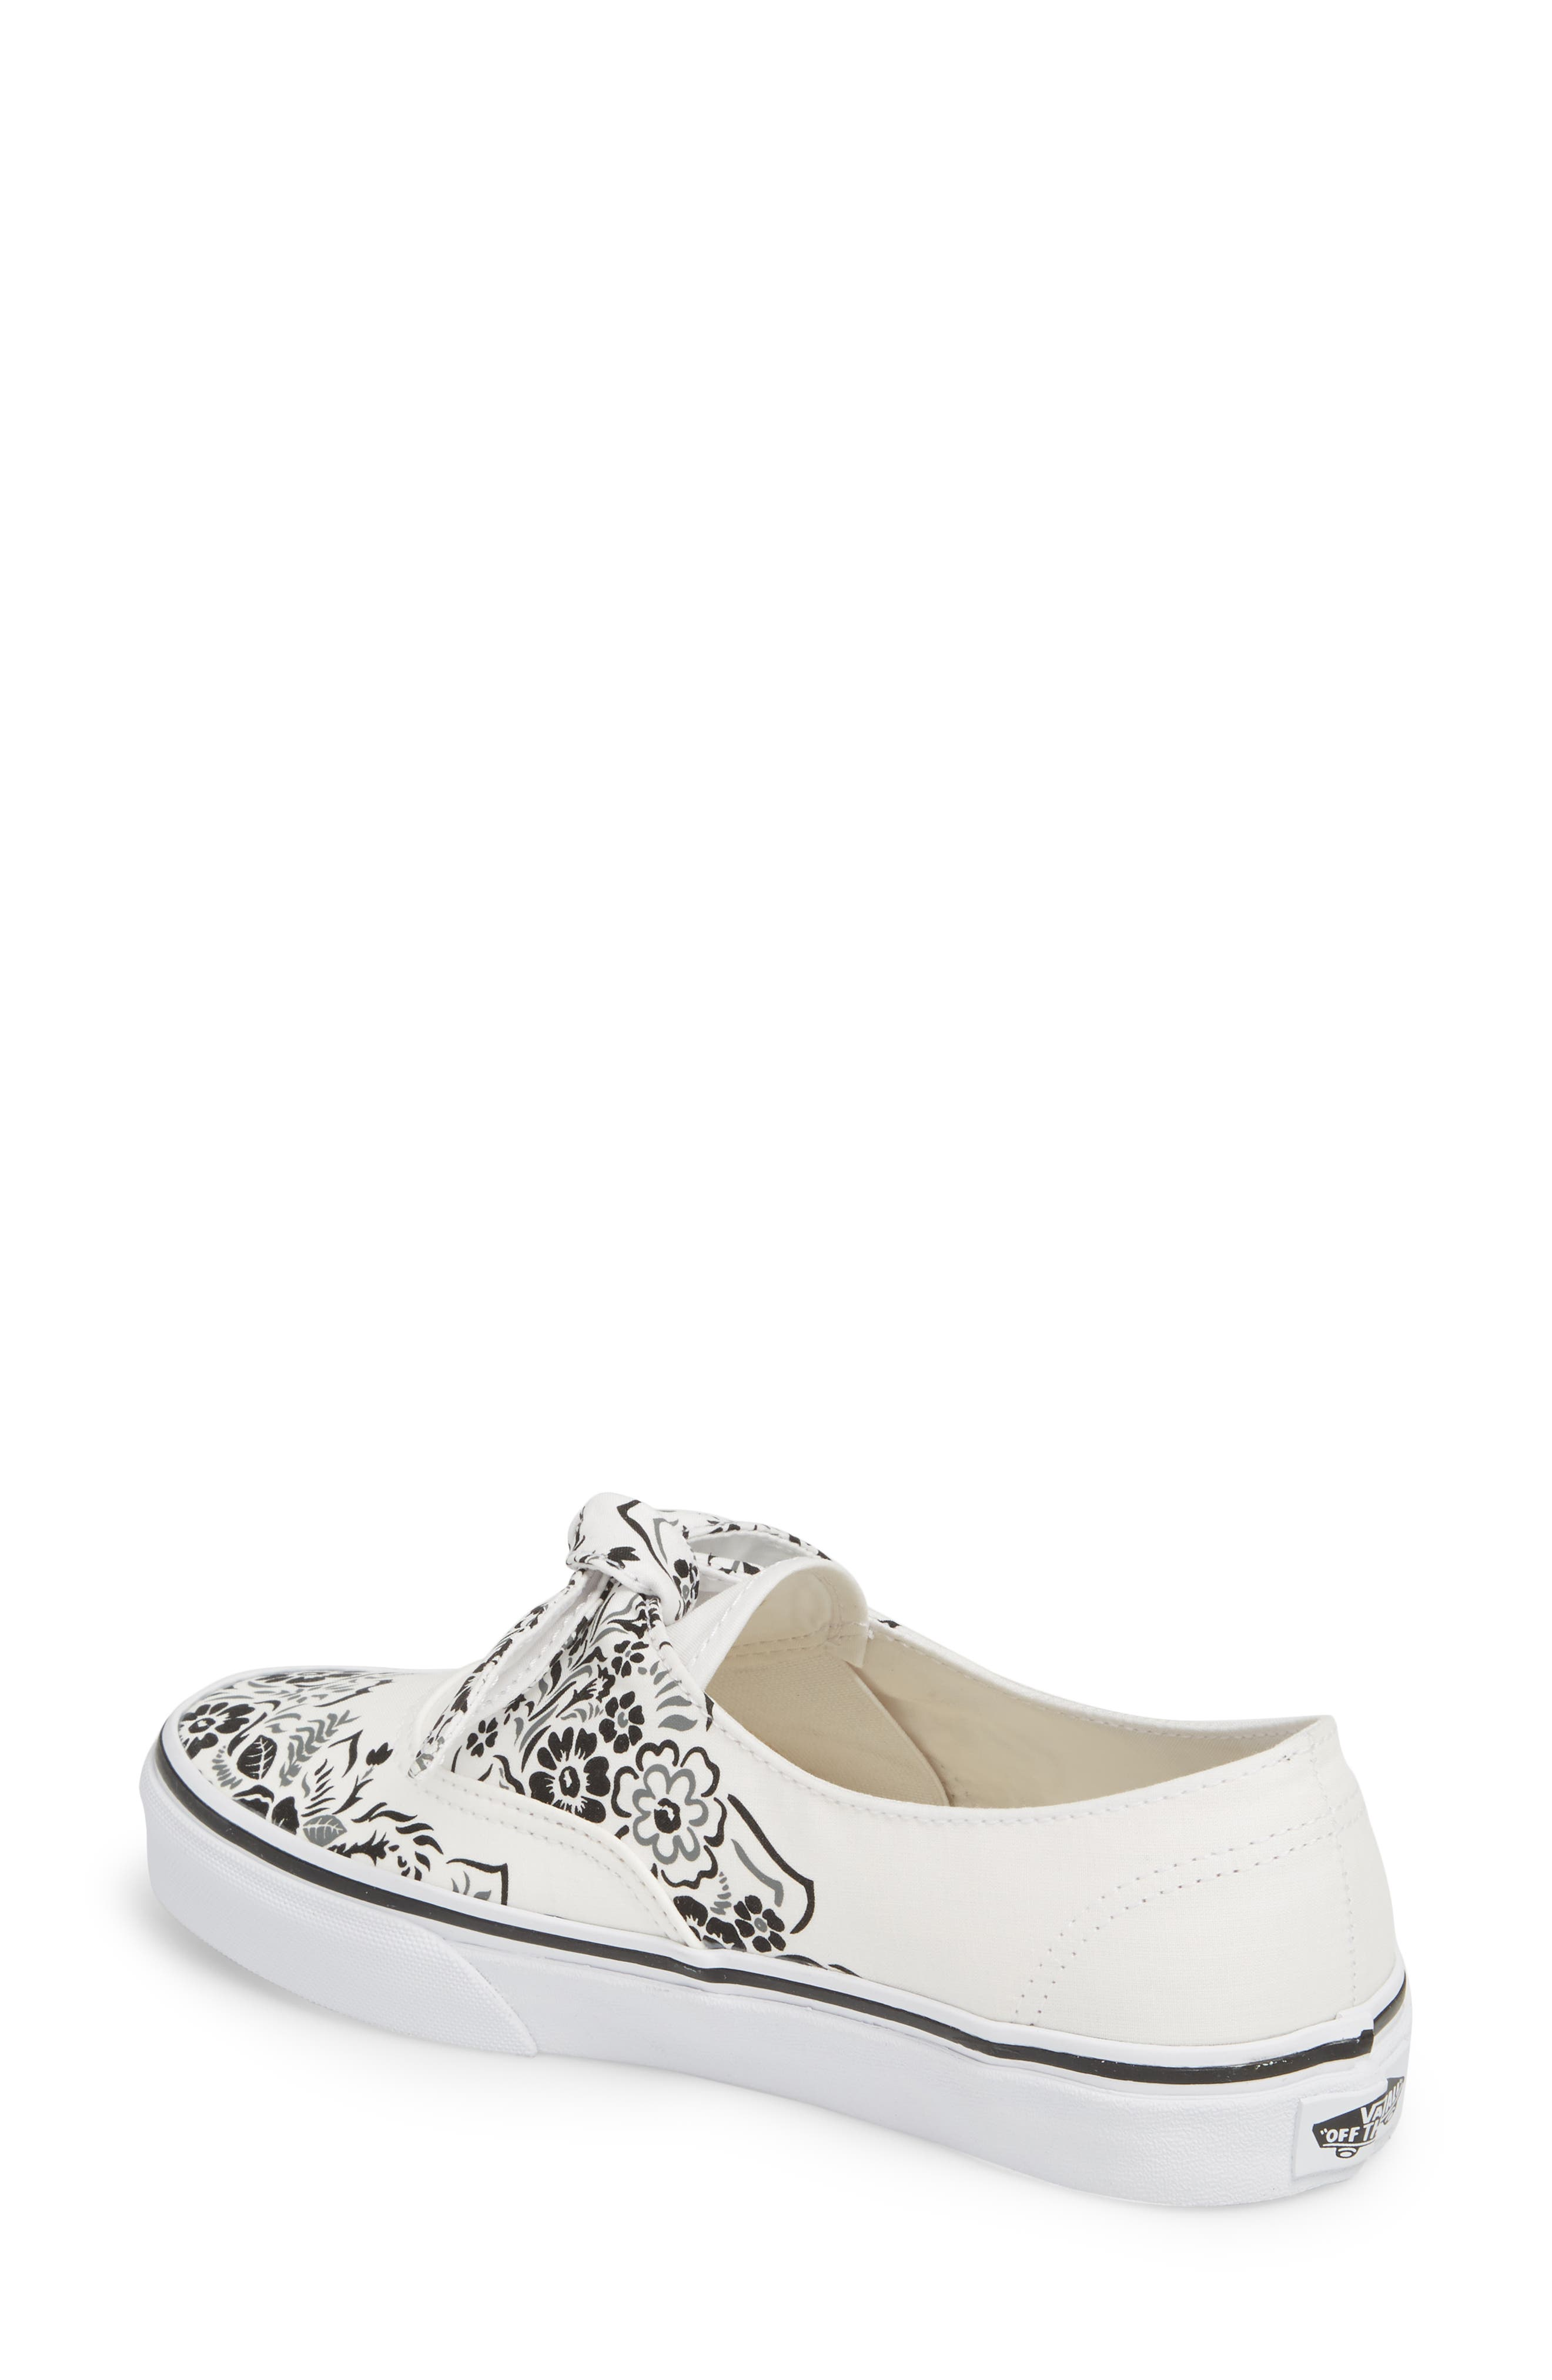 UA Authentic Knotted Floral Bandana Slip-On Sneaker,                             Alternate thumbnail 2, color,                             100